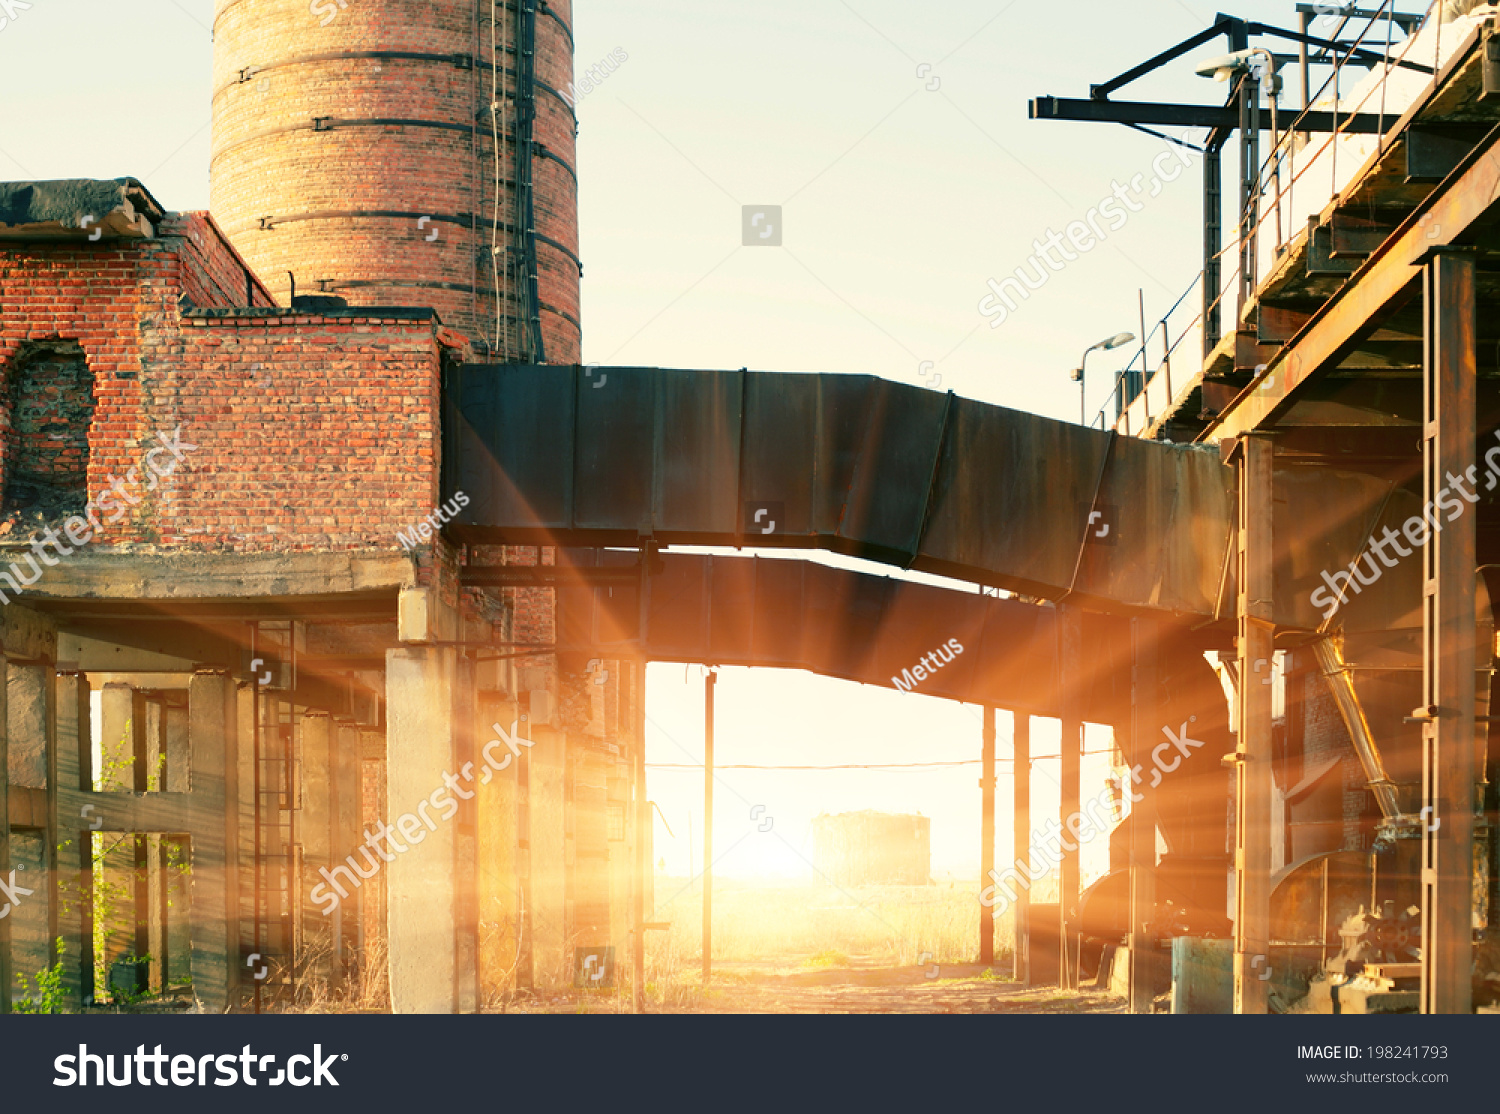 stock-photo-ruins-of-a-very-heavily-poll